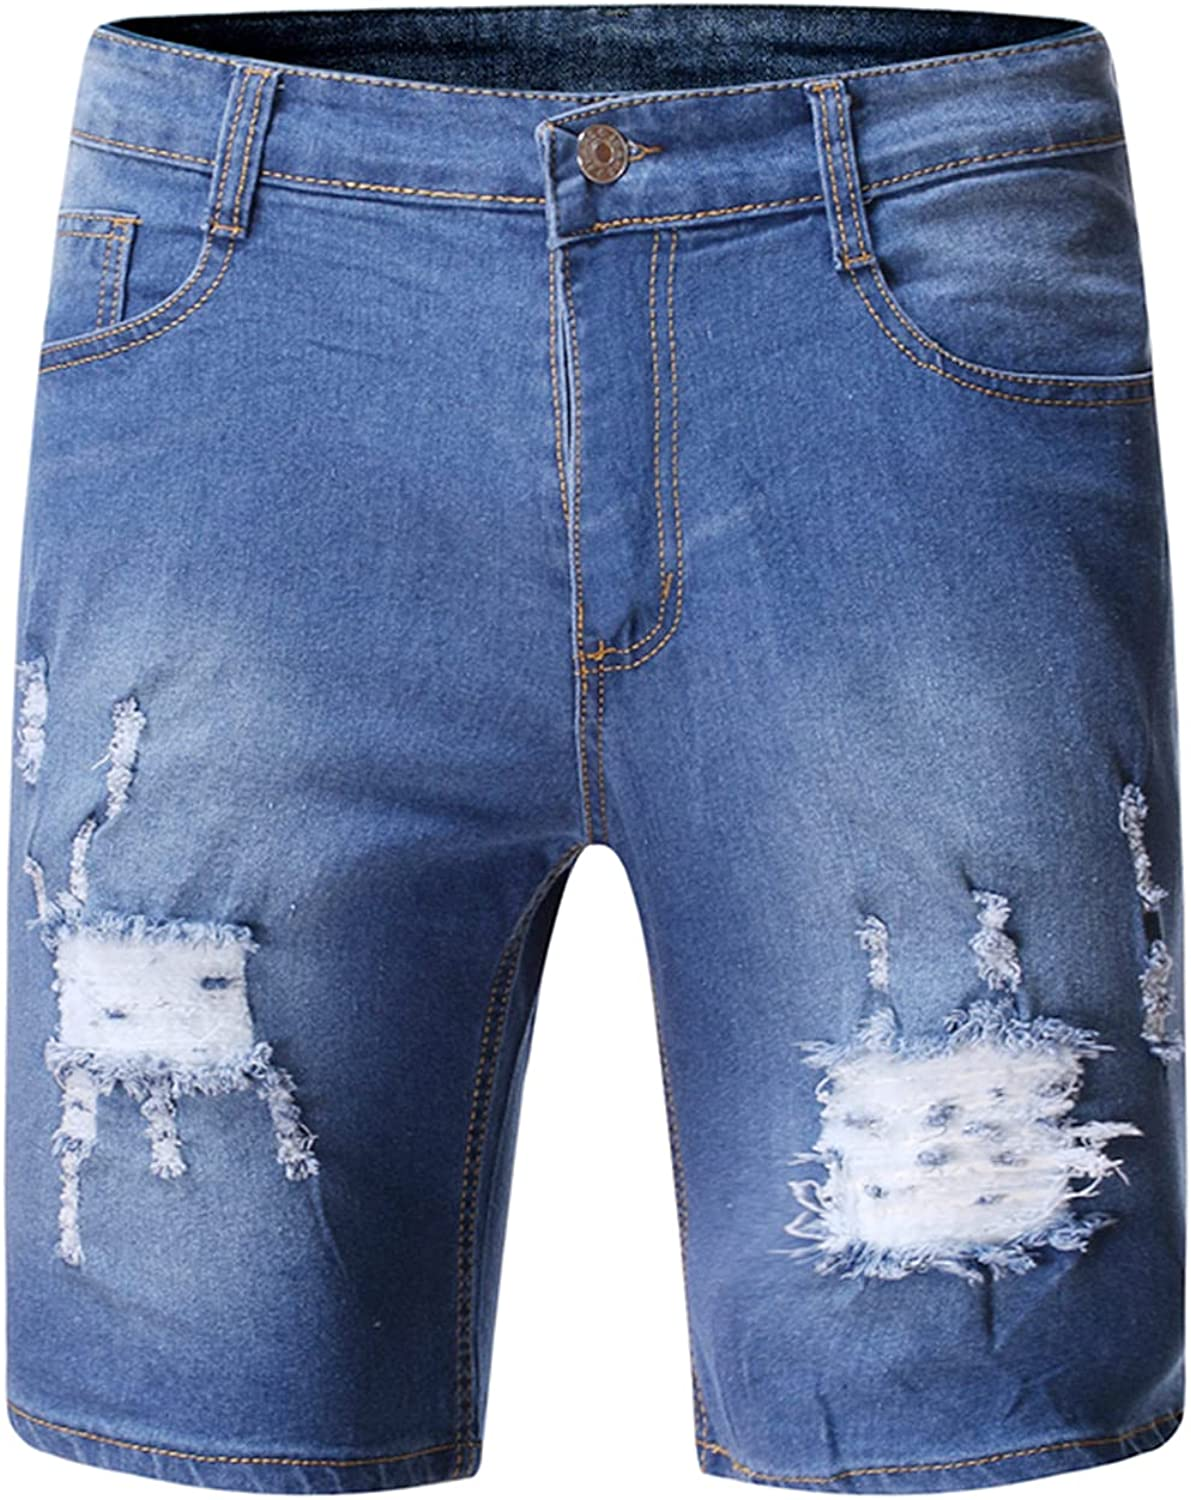 Men's Casual Rolled Ripped Jean Shorts Distressed Washed Denim Short-Pant Straight Fit Jeans Short with Broken Hole